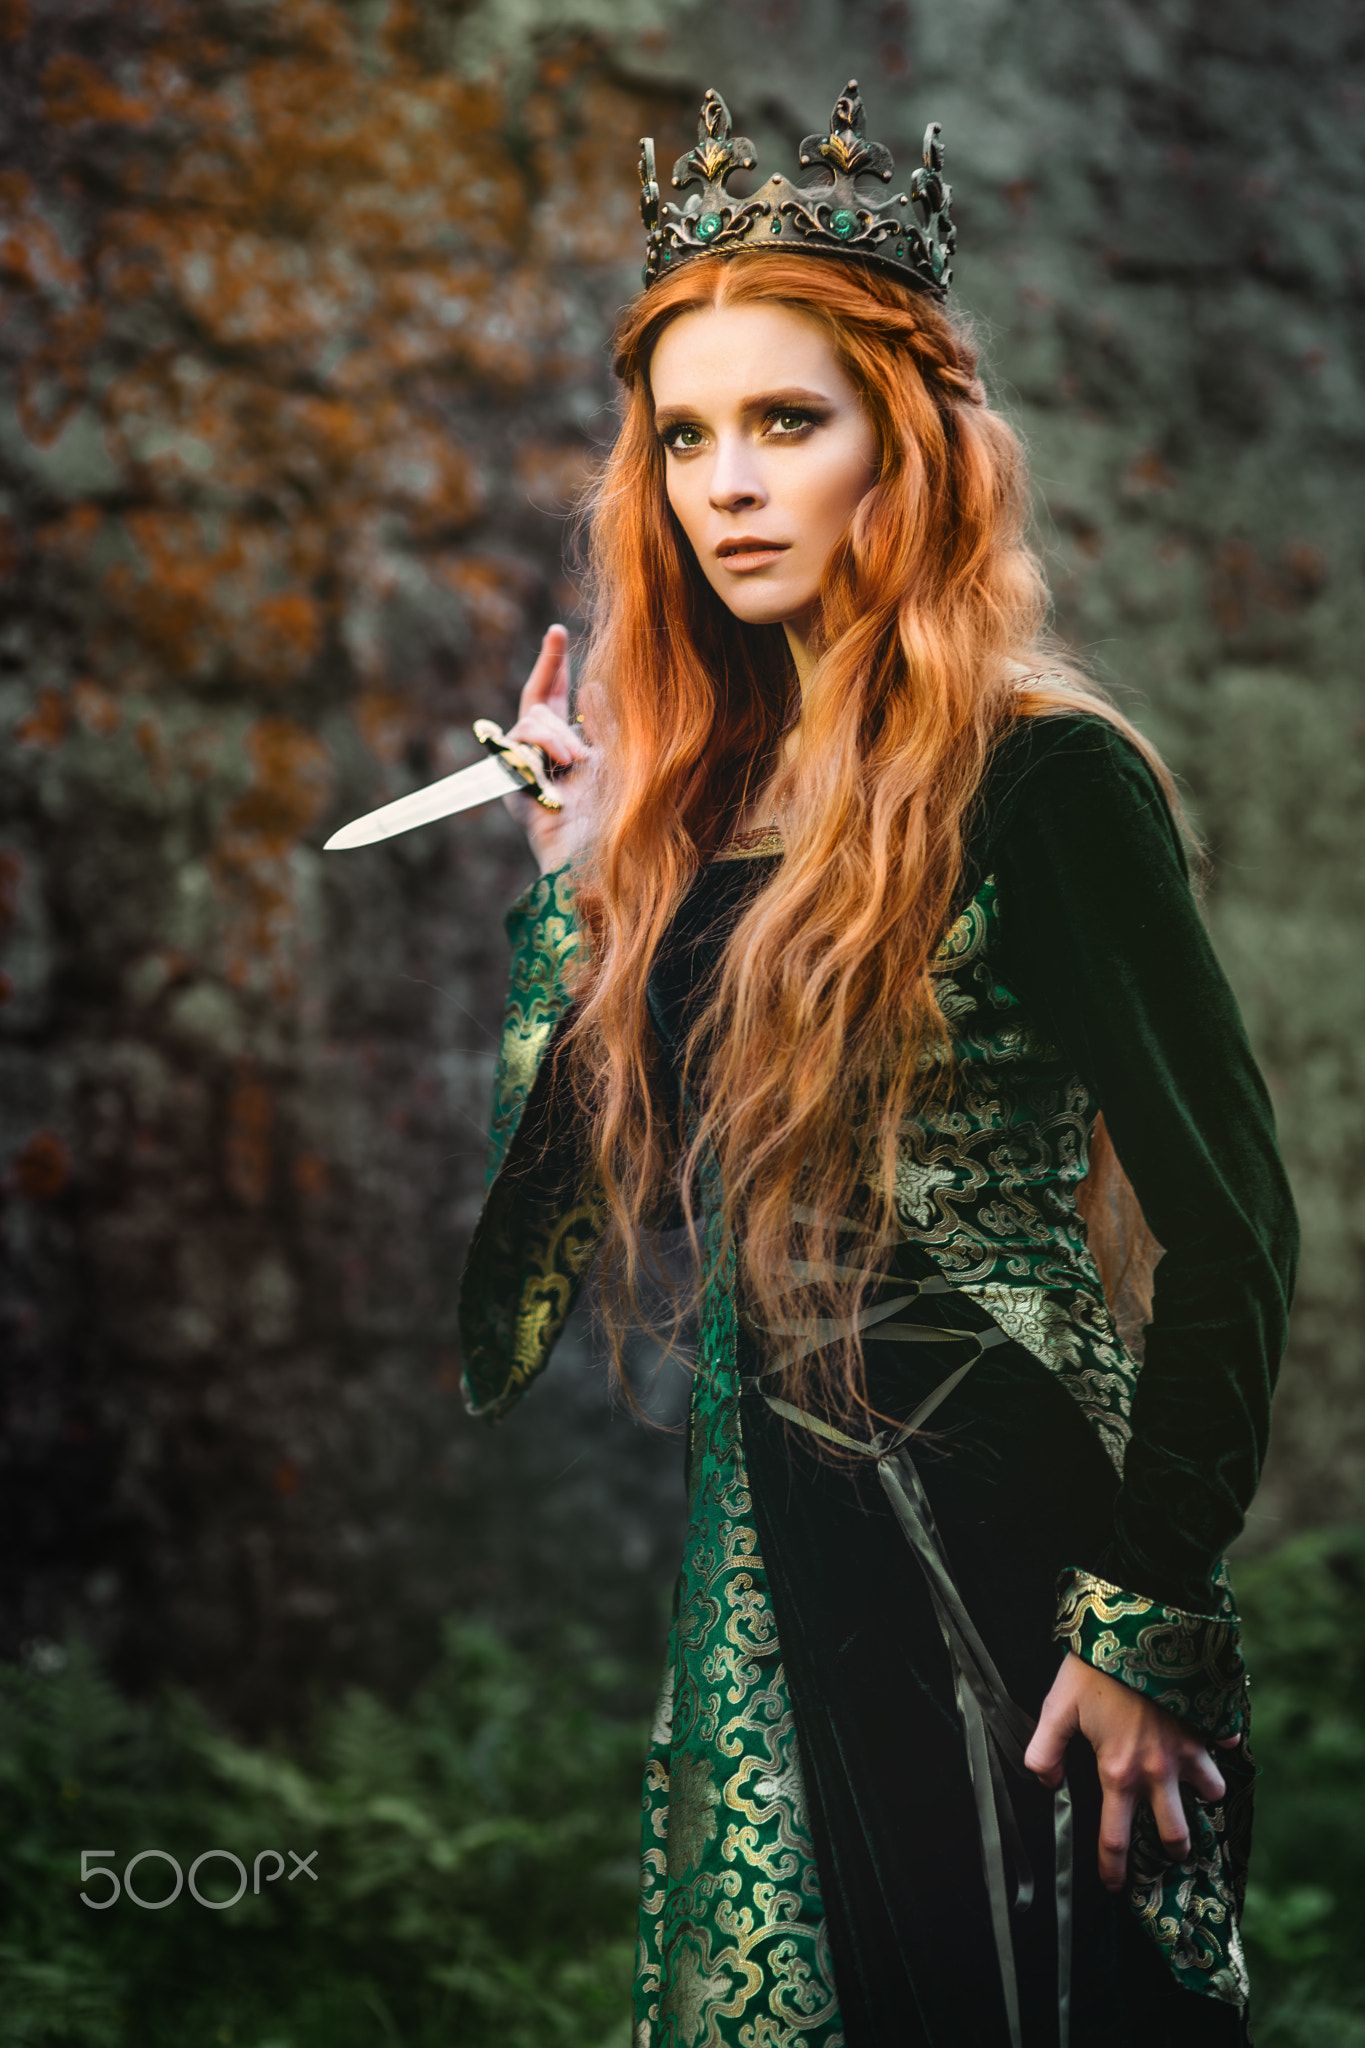 Ginger Queen Near The Castle Red Haired Woman In A Green Medieval Dress Near The Castle Medieval Princess Queen Aesthetic Fantasy Fashion